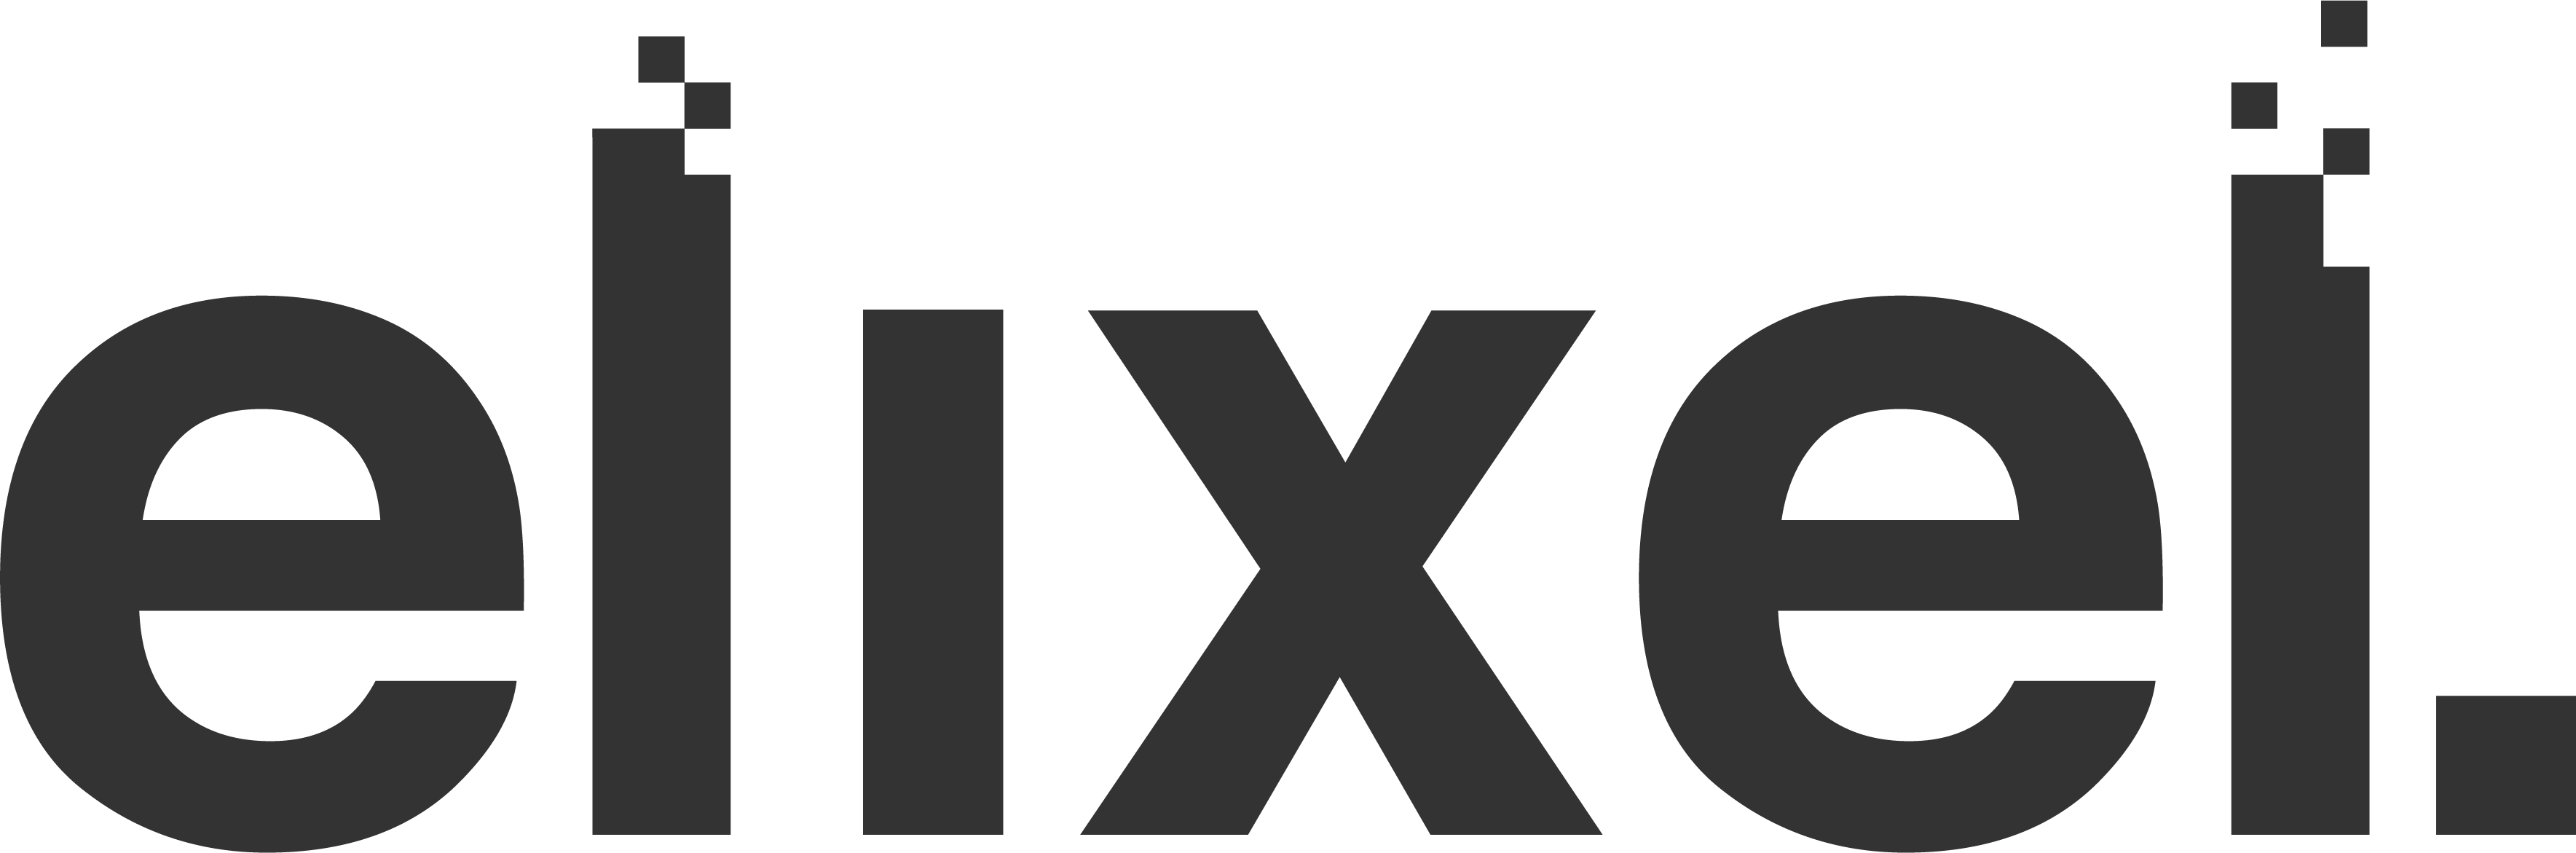 Elixel Digital Agency Logo